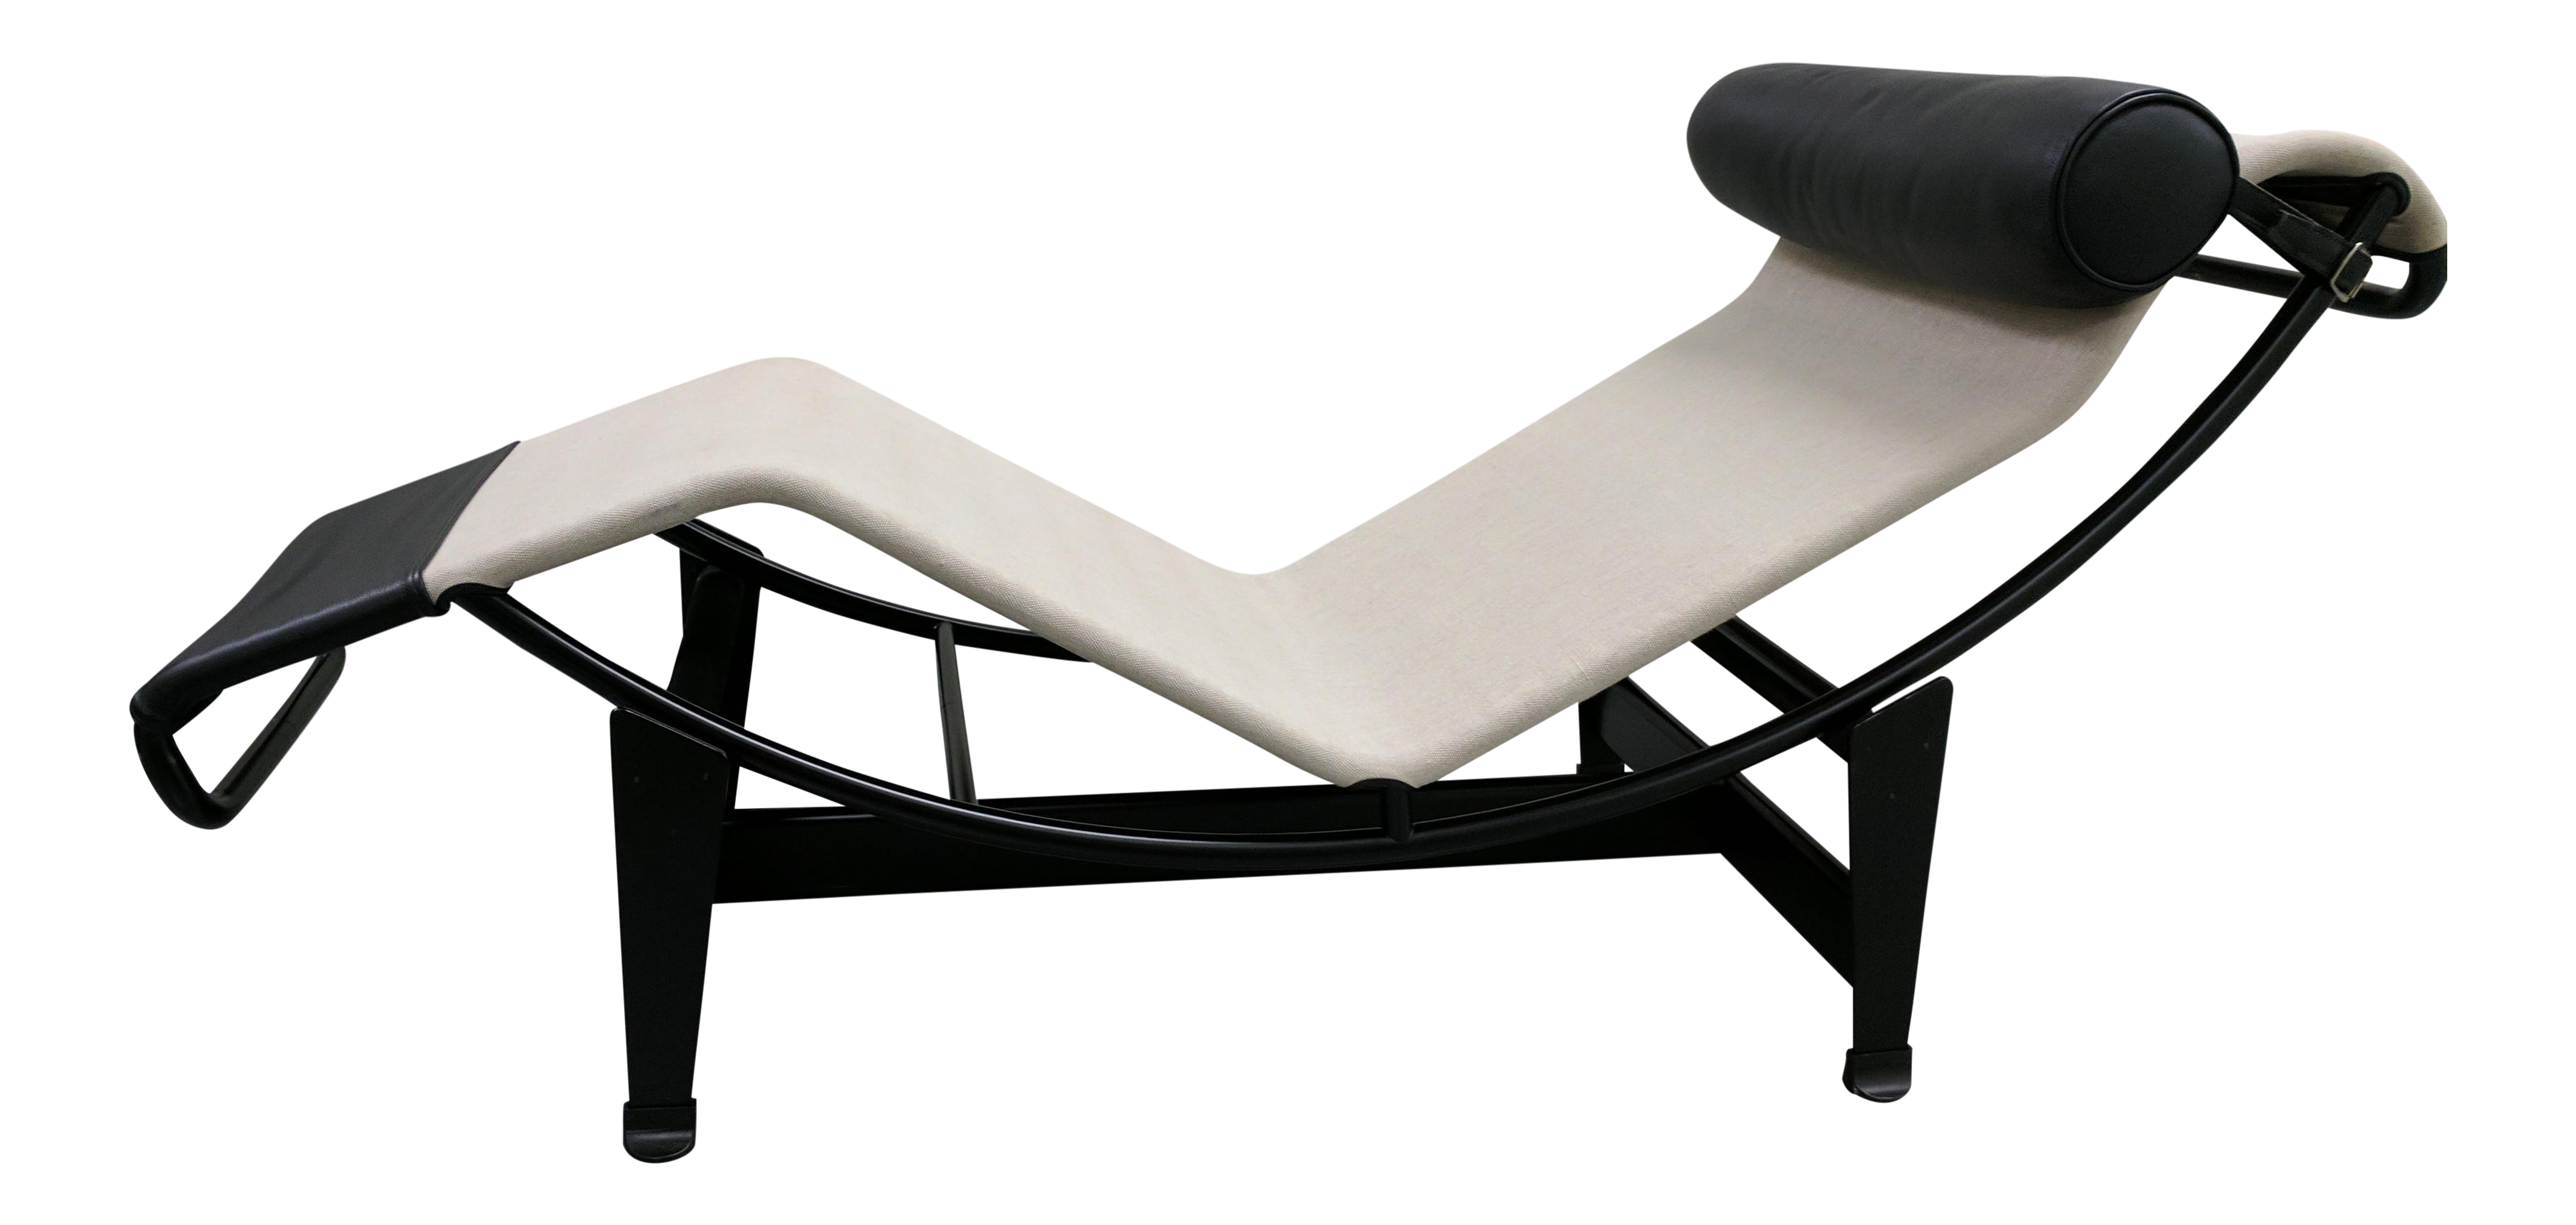 Le corbusier designed lc4 chaise longue chairish - Chaise longue le corbusier occasion ...